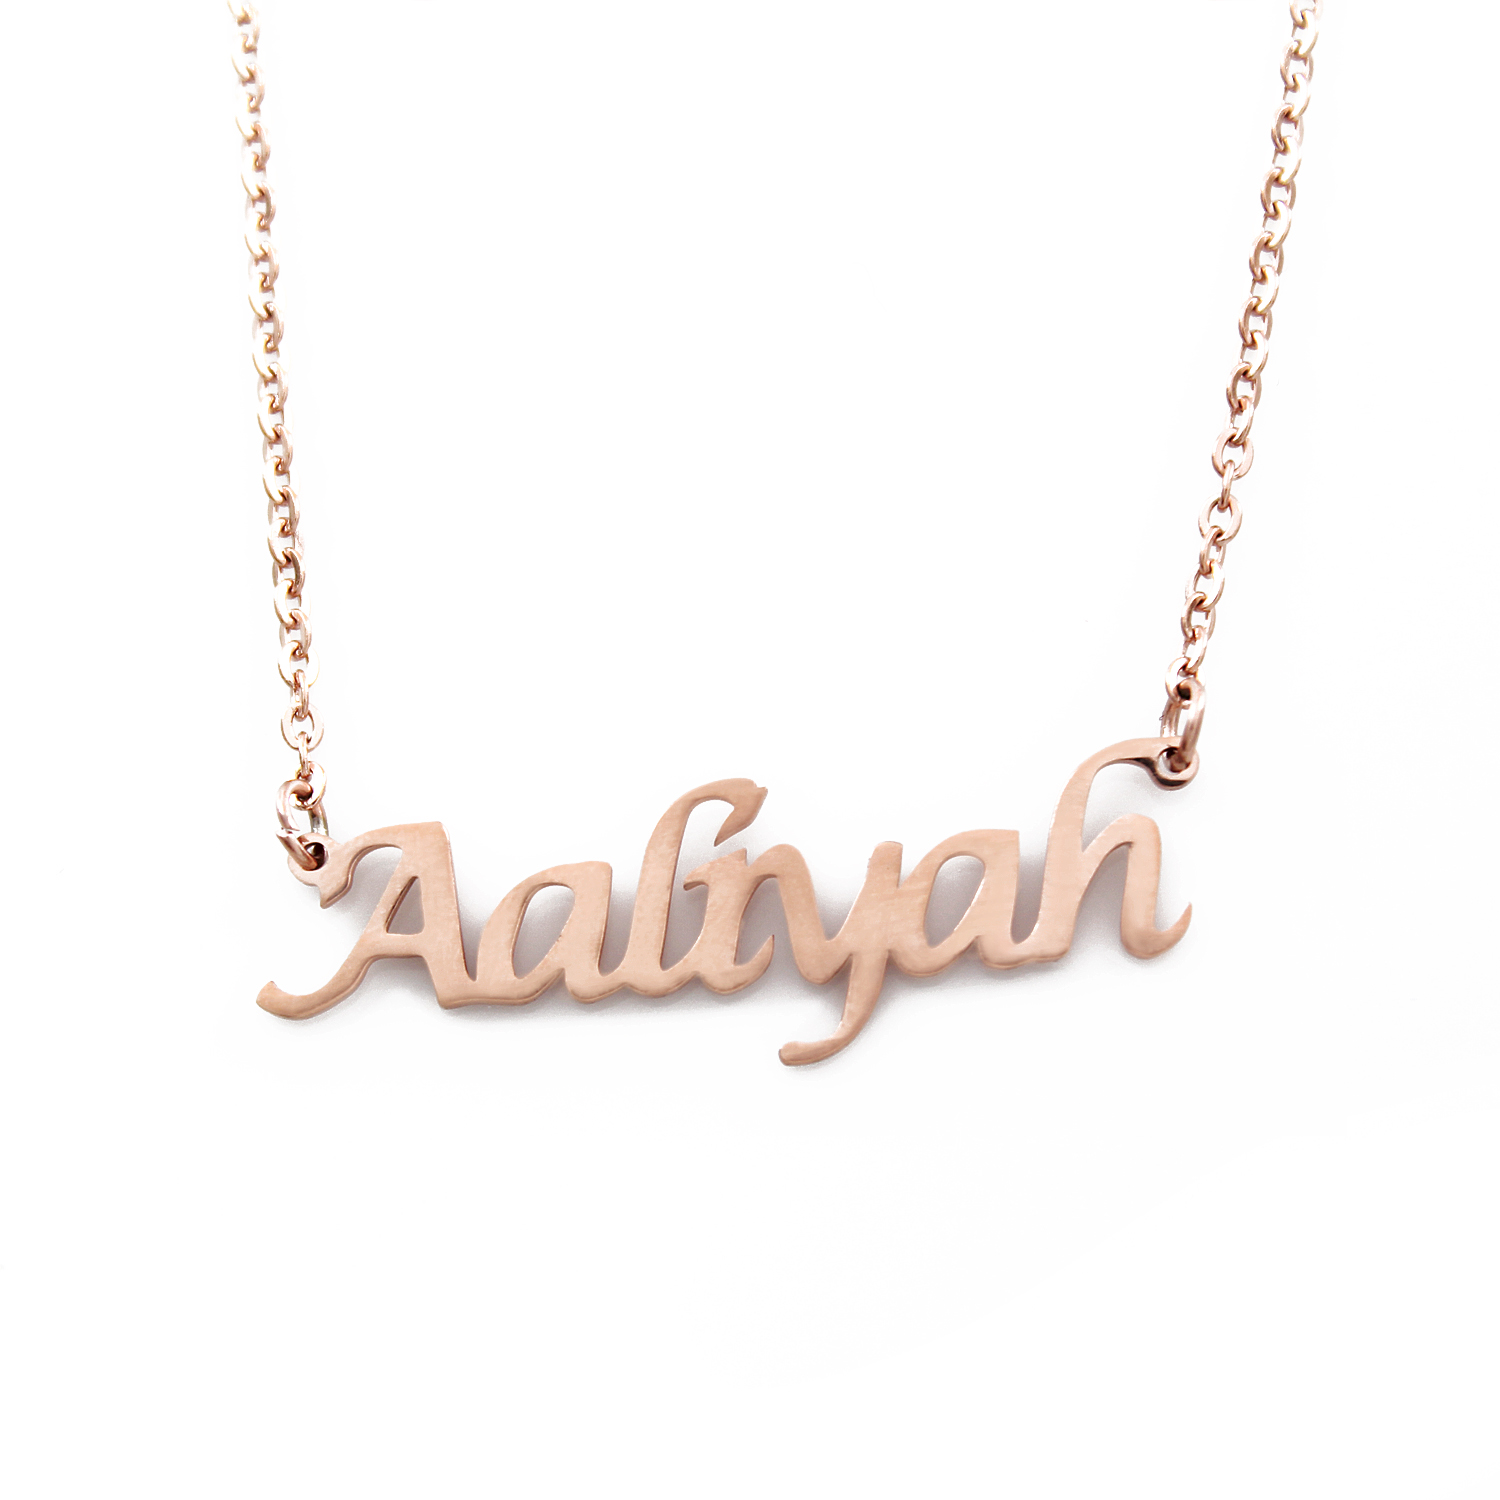 Aaliyah Gold Name Necklace Personalized Jewellery Customized Gifts For Her